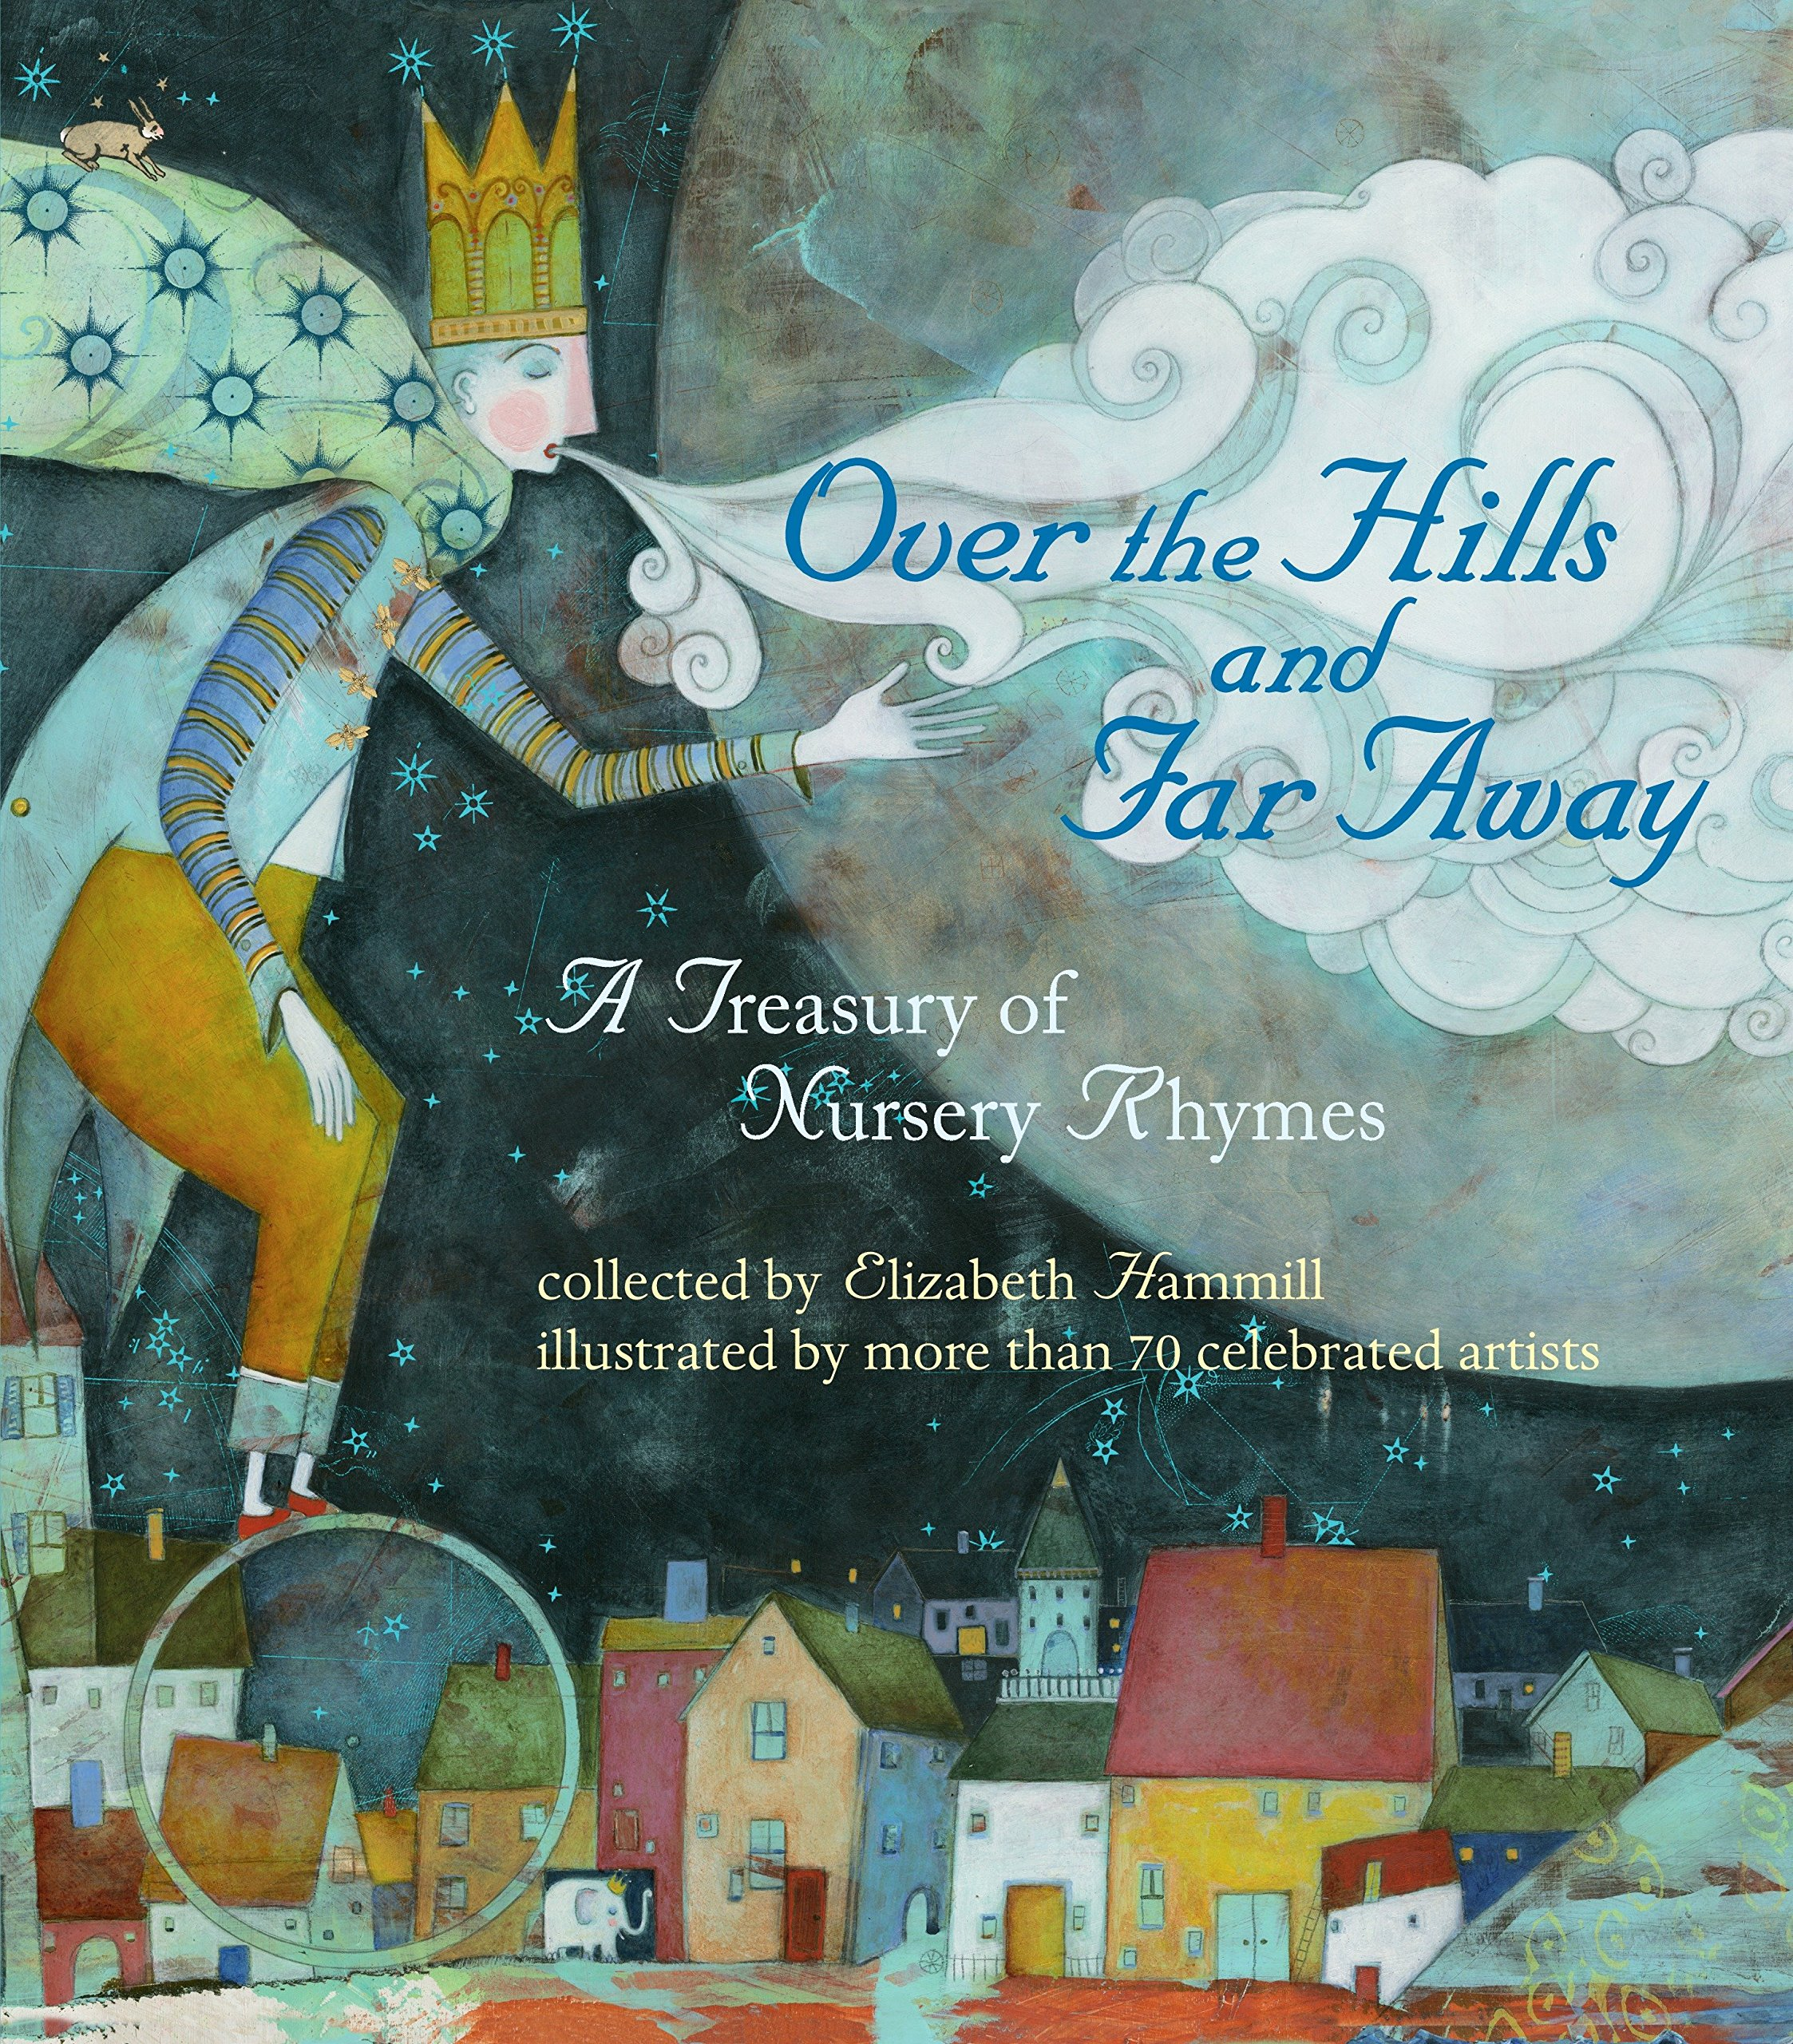 Over the Hills and Far Away: A Treasury of Nursery Rhymes by Candlewick Press MA